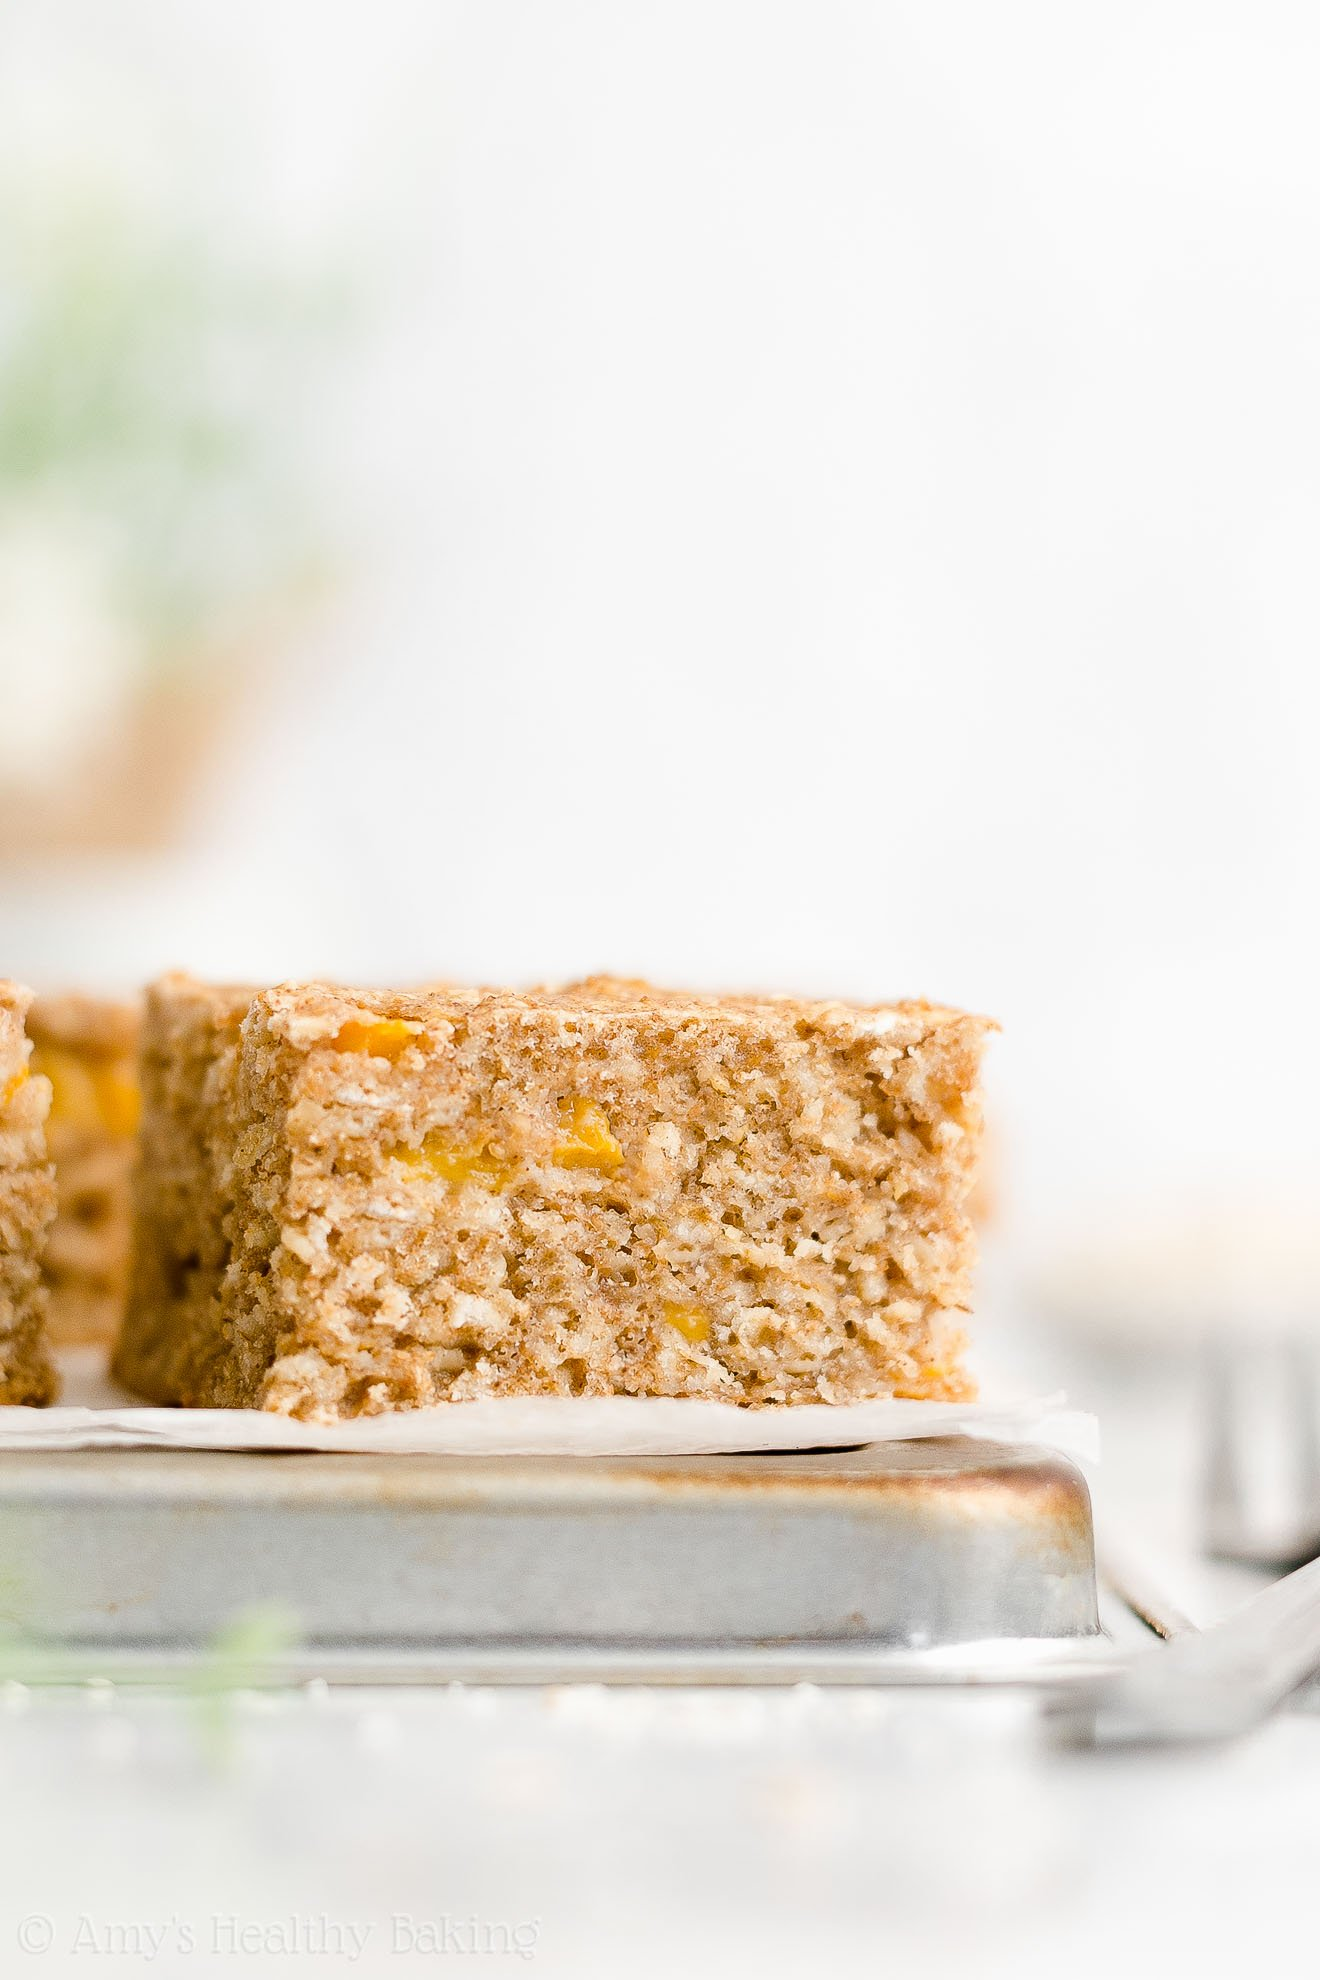 Easy Healthy Whole Wheat Greek Yogurt Fresh Peach Oatmeal Breakfast Cake